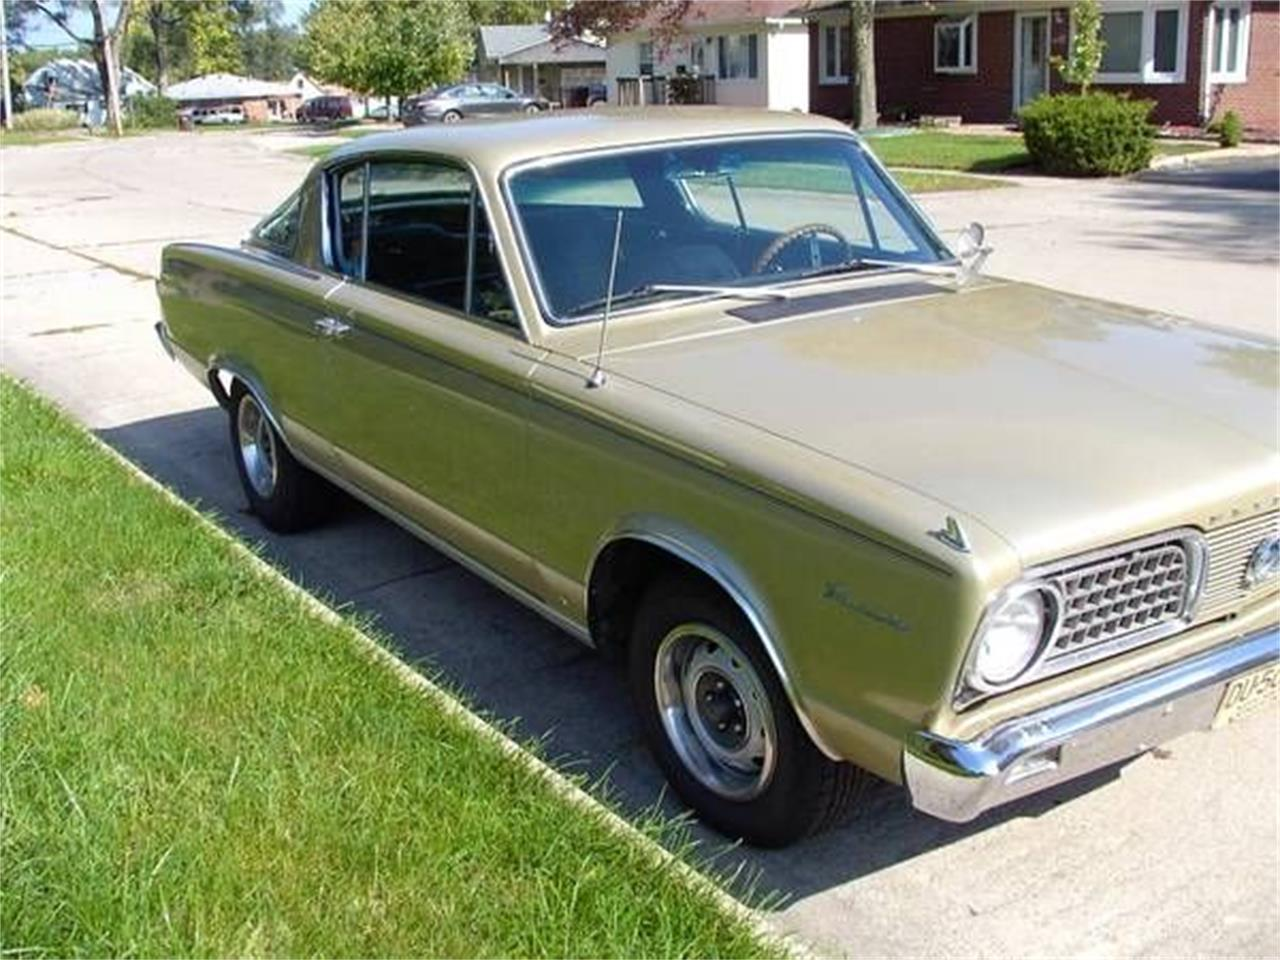 For Sale: 1966 Plymouth Barracuda in Cadillac, Michigan